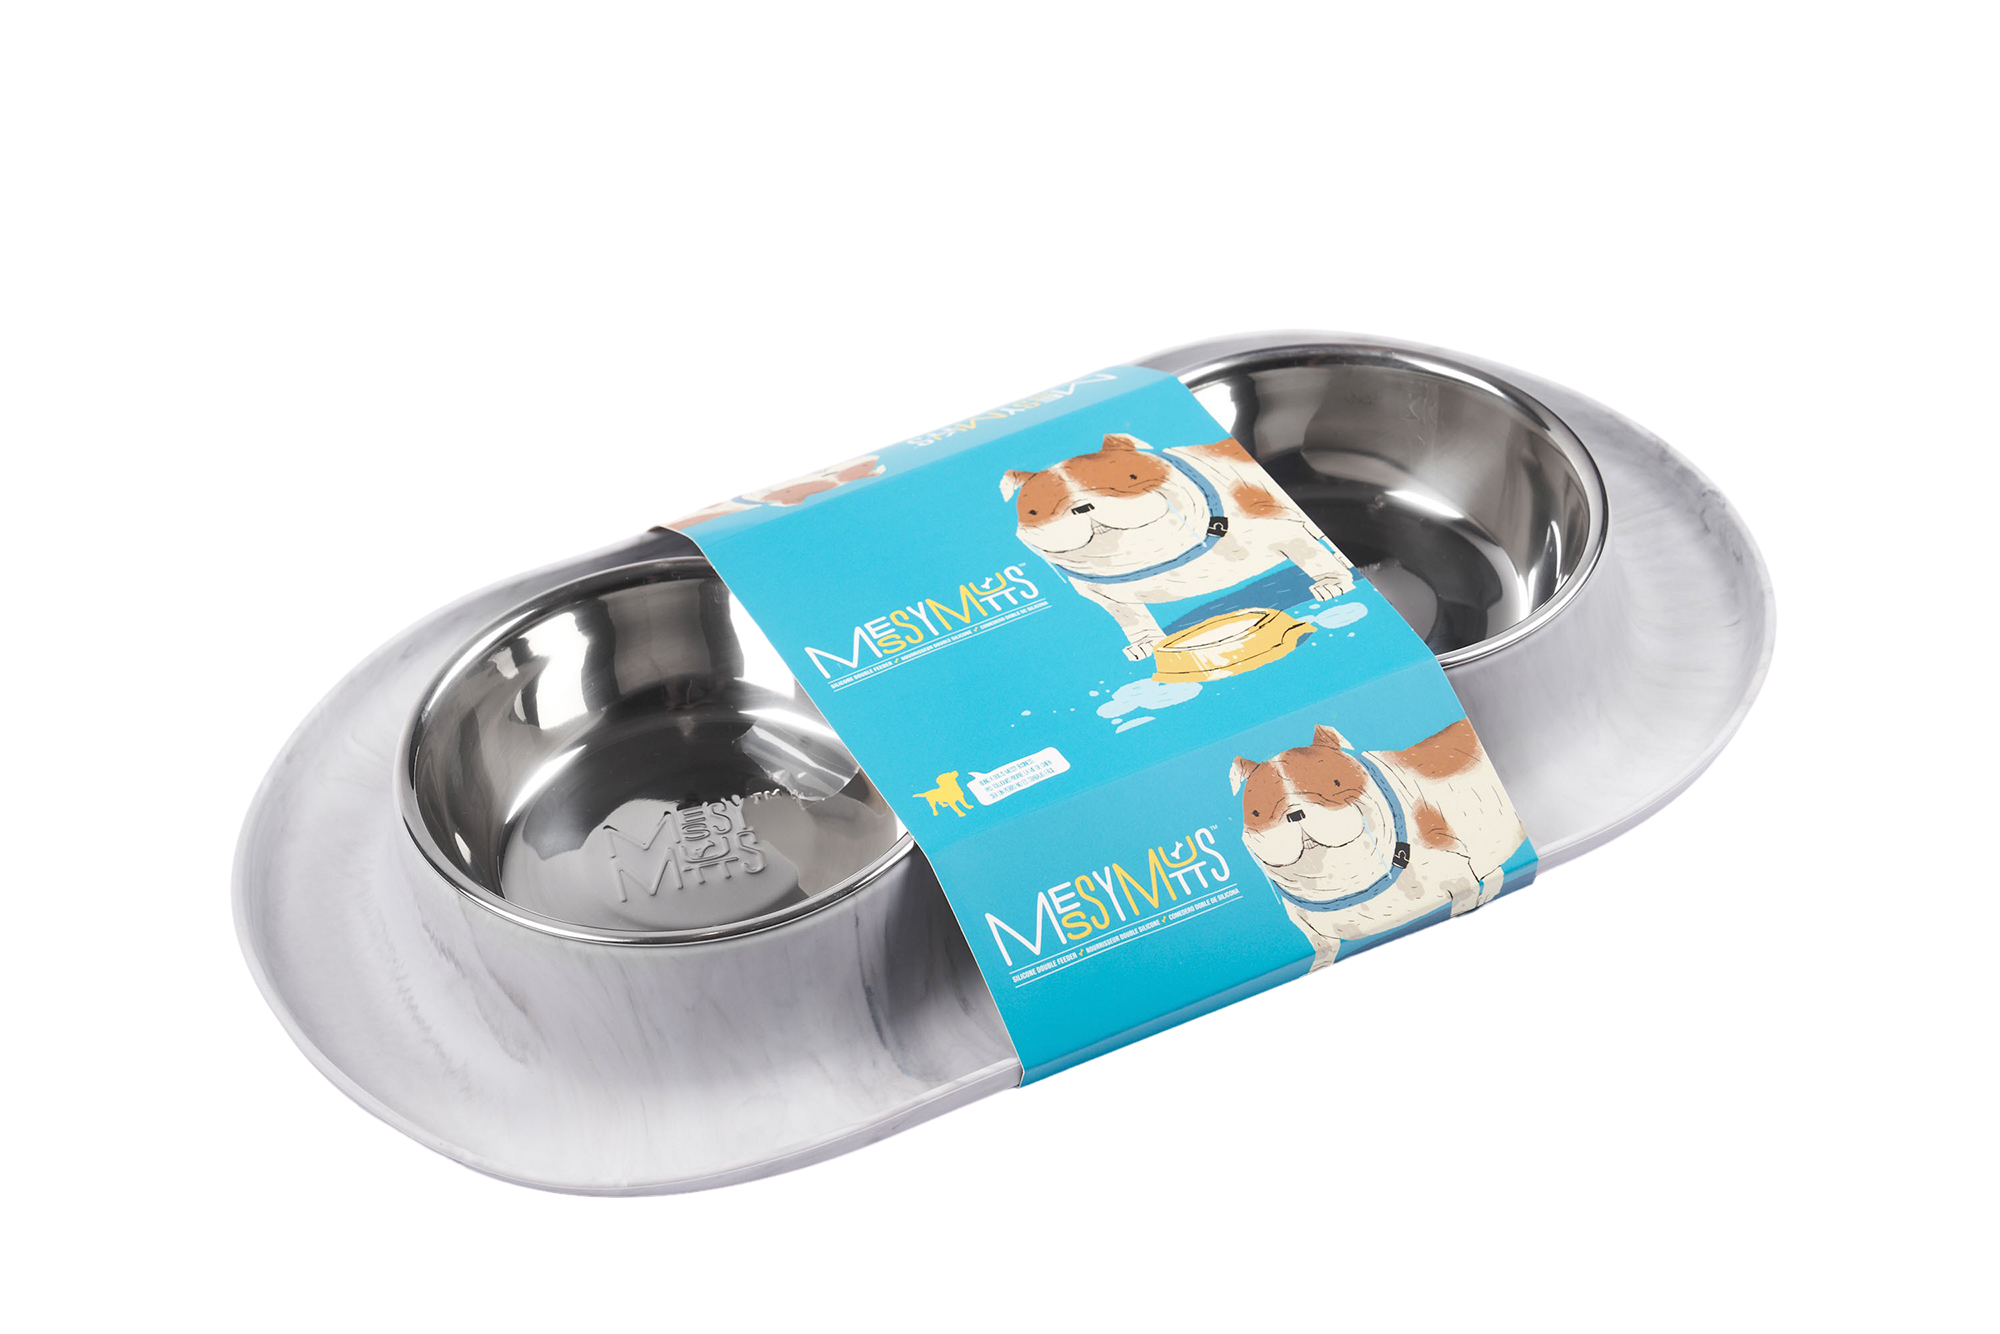 Messy Mutts Stainless Steel Double Feeder with Non-Slip Base Dog Bowl, Marble, Medium